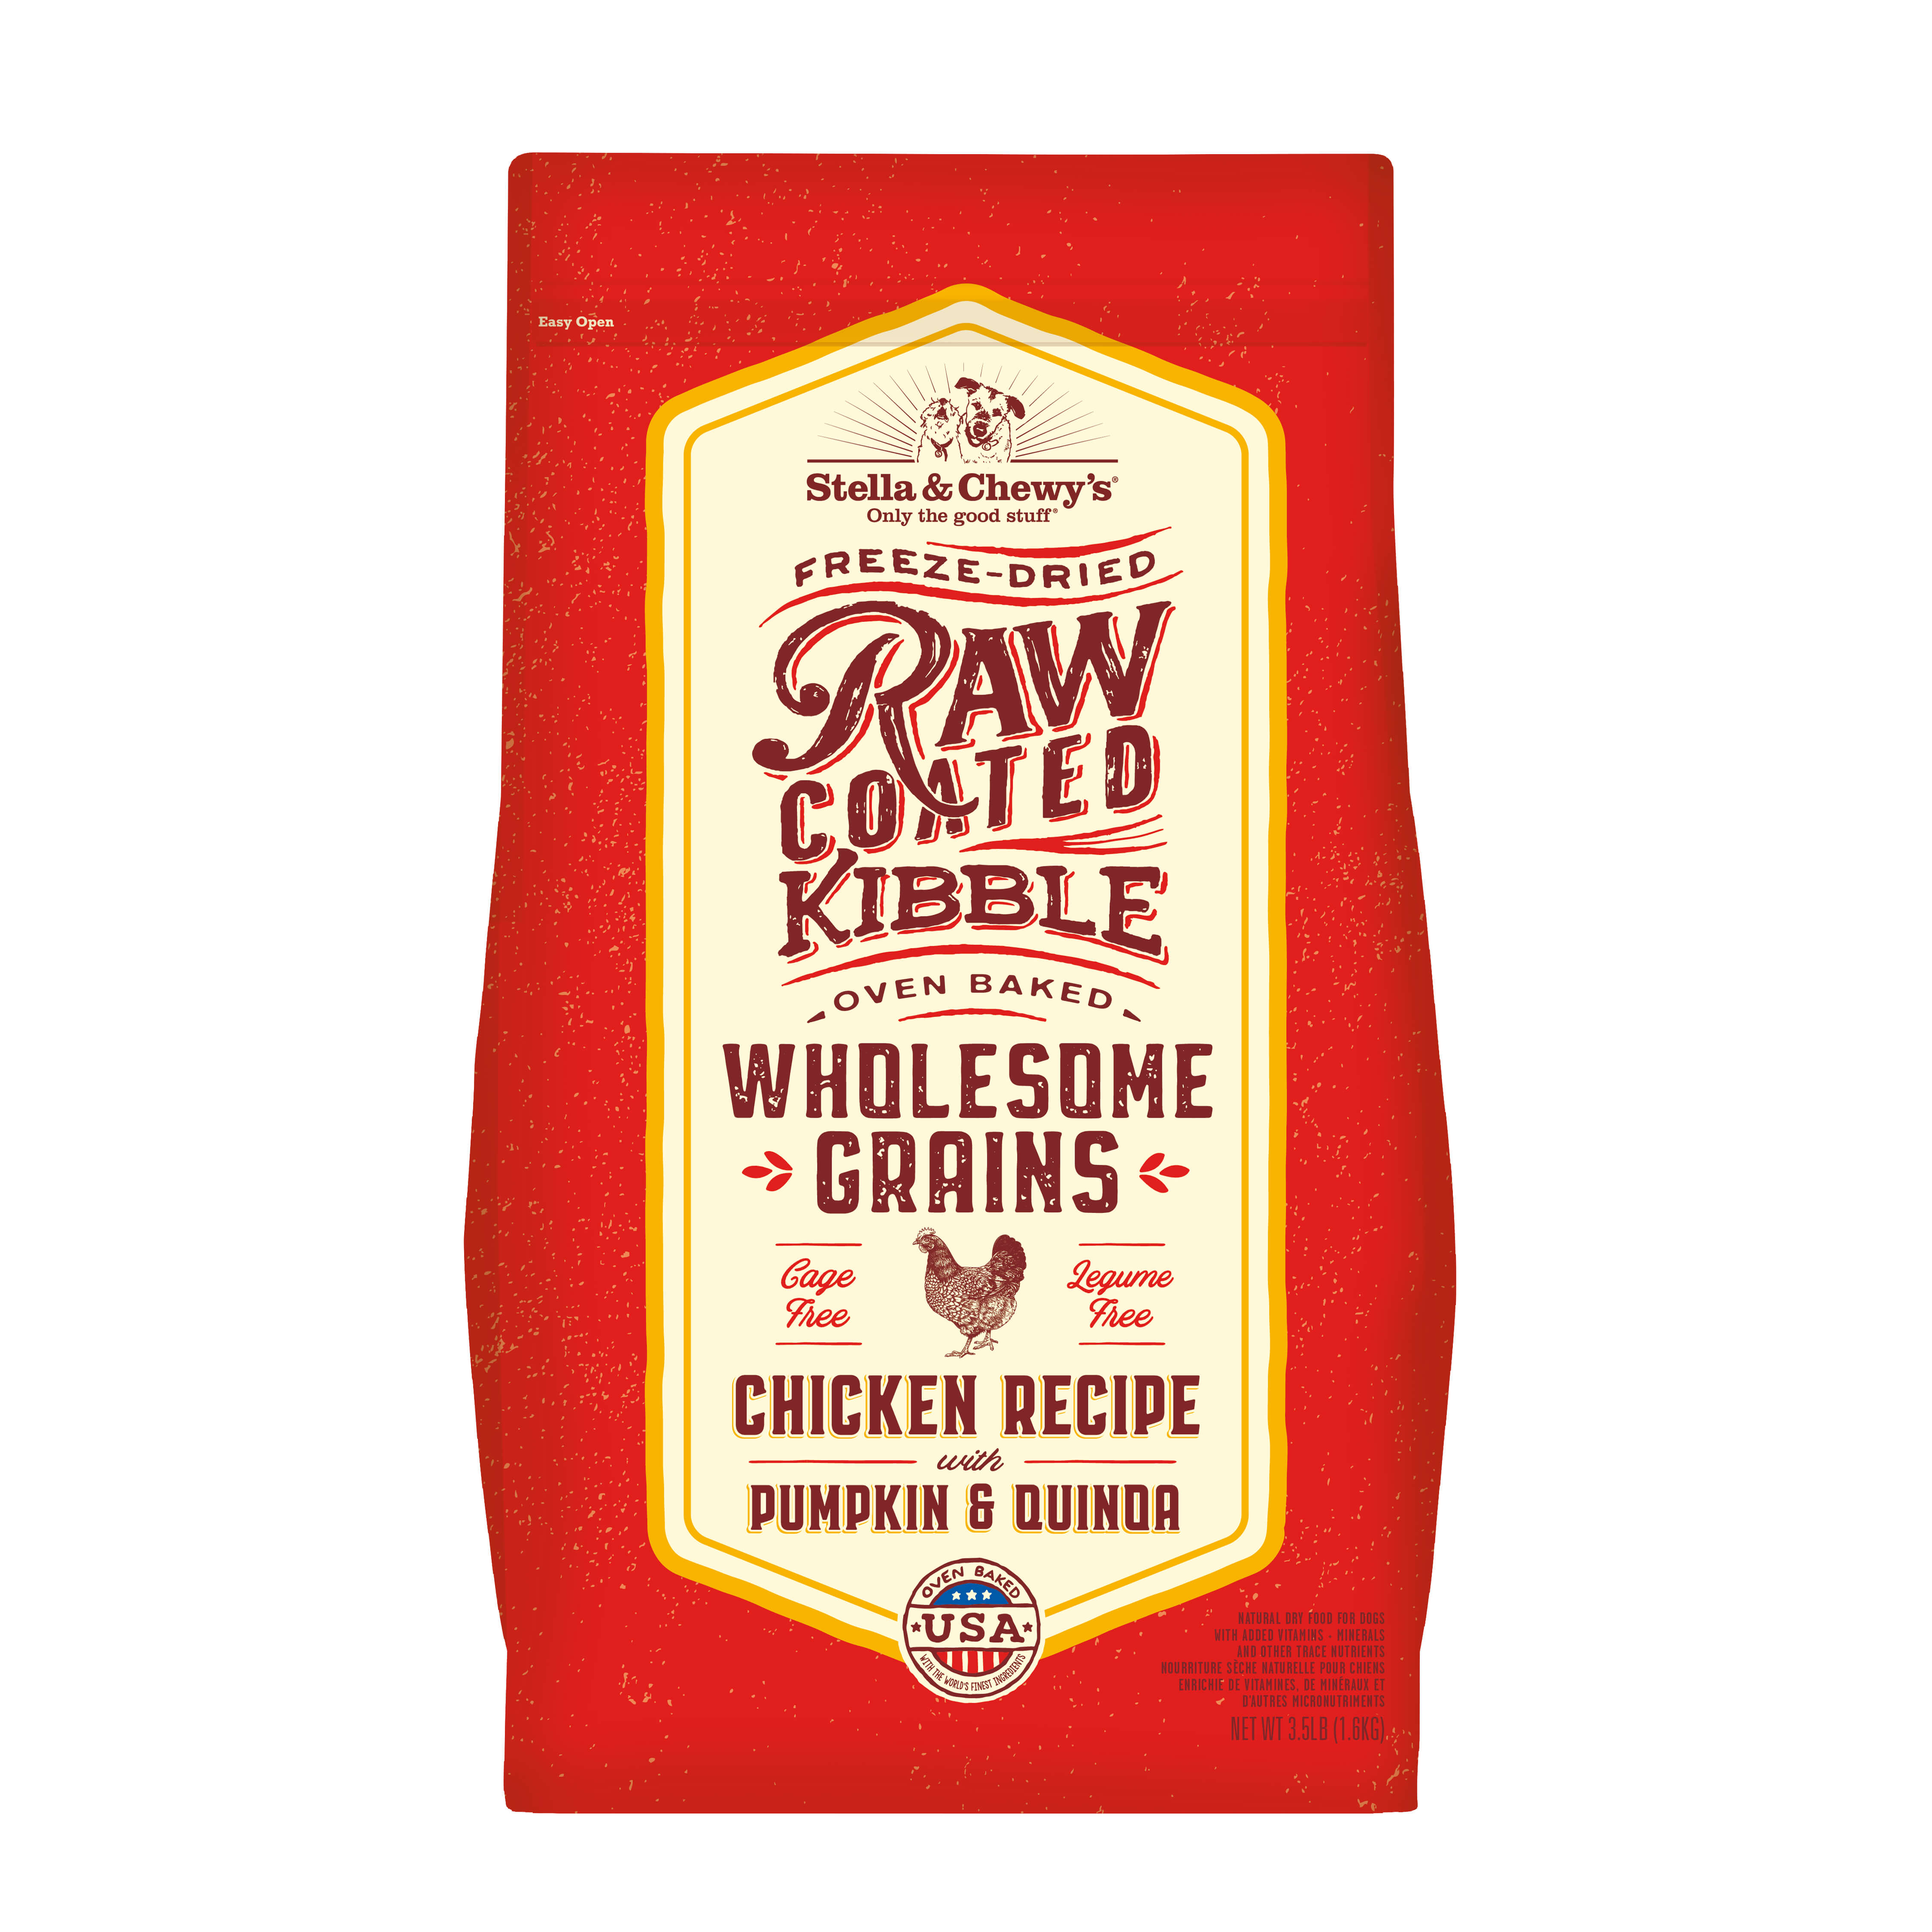 Stella & Chewy's Raw Coated Baked Kibble with Wholesome Grains Chicken Recipe with Pumpkin & Quinoa Dry Dog Food, 3.5-lb